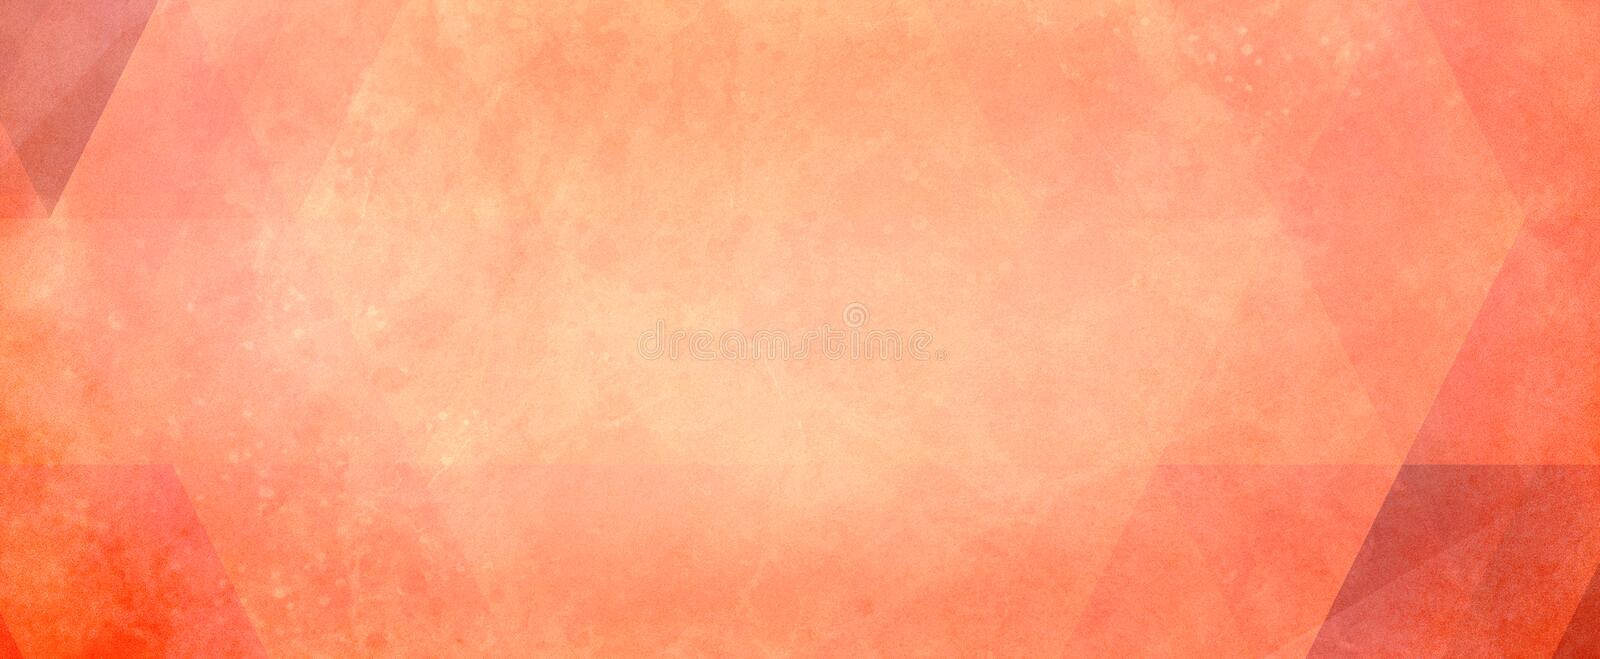 Abstract peach and orange background with faint red triangles and low poly blocks and triangle pattern. And soft white grunge border texture vector illustration